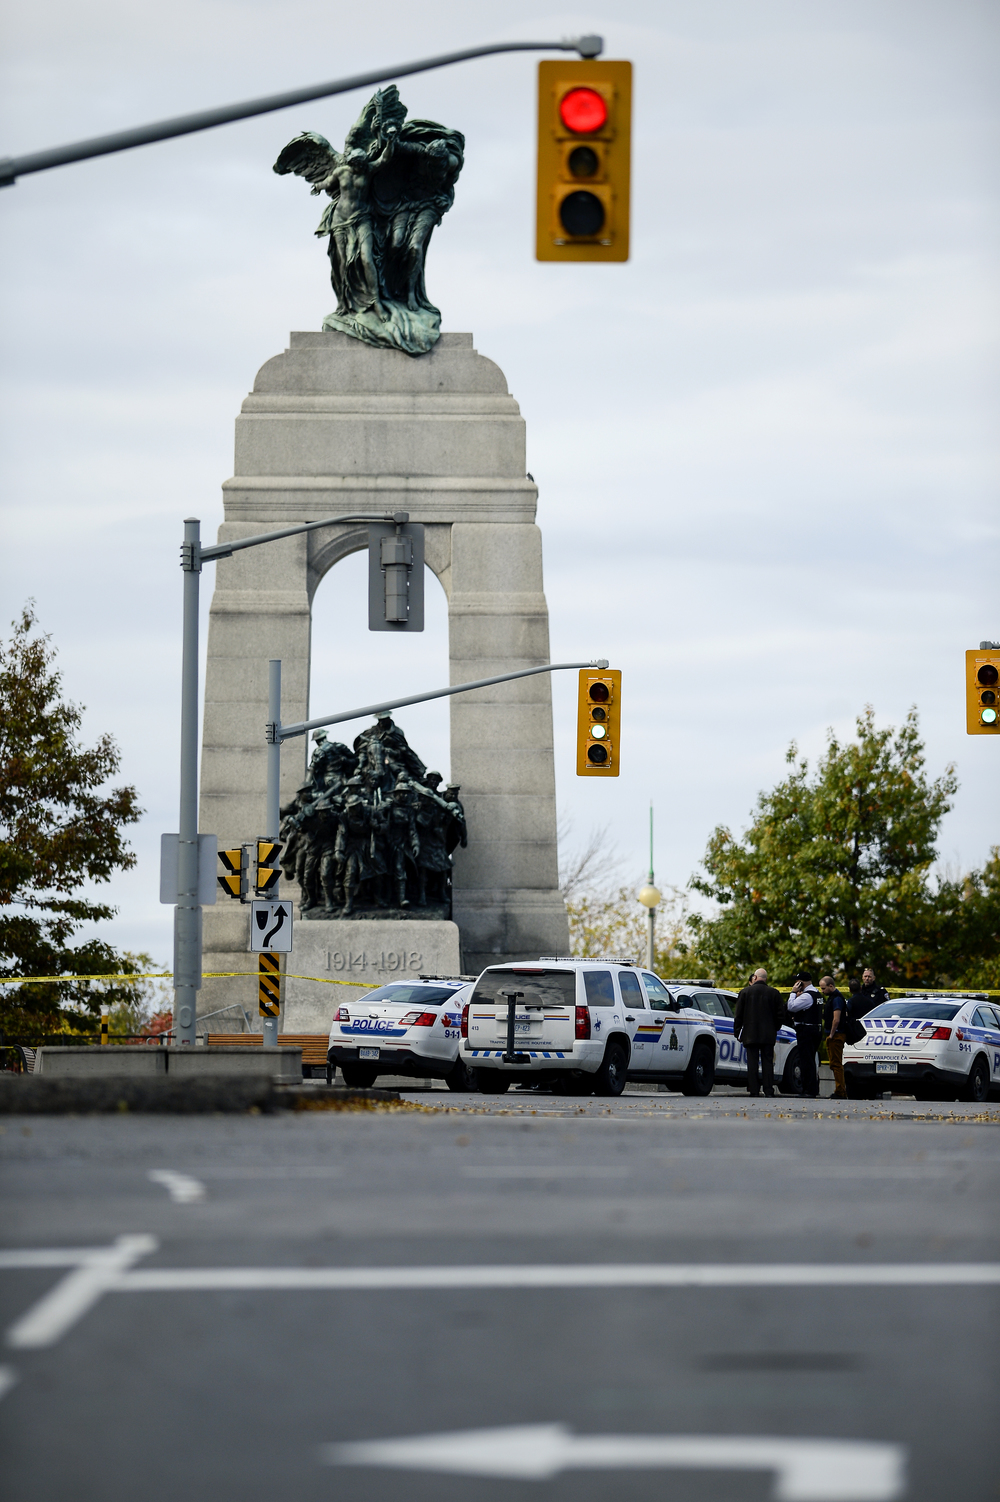 OTTAWA, Ont. (22/10/14) - Police and RCMP cars block the National War Memorial after an early morning shooting that has left two people dead include a member of the Canadian Armed Forces in Ottawa, Ont., on Tuesday Oct. 22, 2014. A gunman had opened fire on a solider standing at the National War Memorial around 9:50am then proceeded to storm the Parliament building where lots of gunfire was heard. Photo by Andrew Lahodynskyj